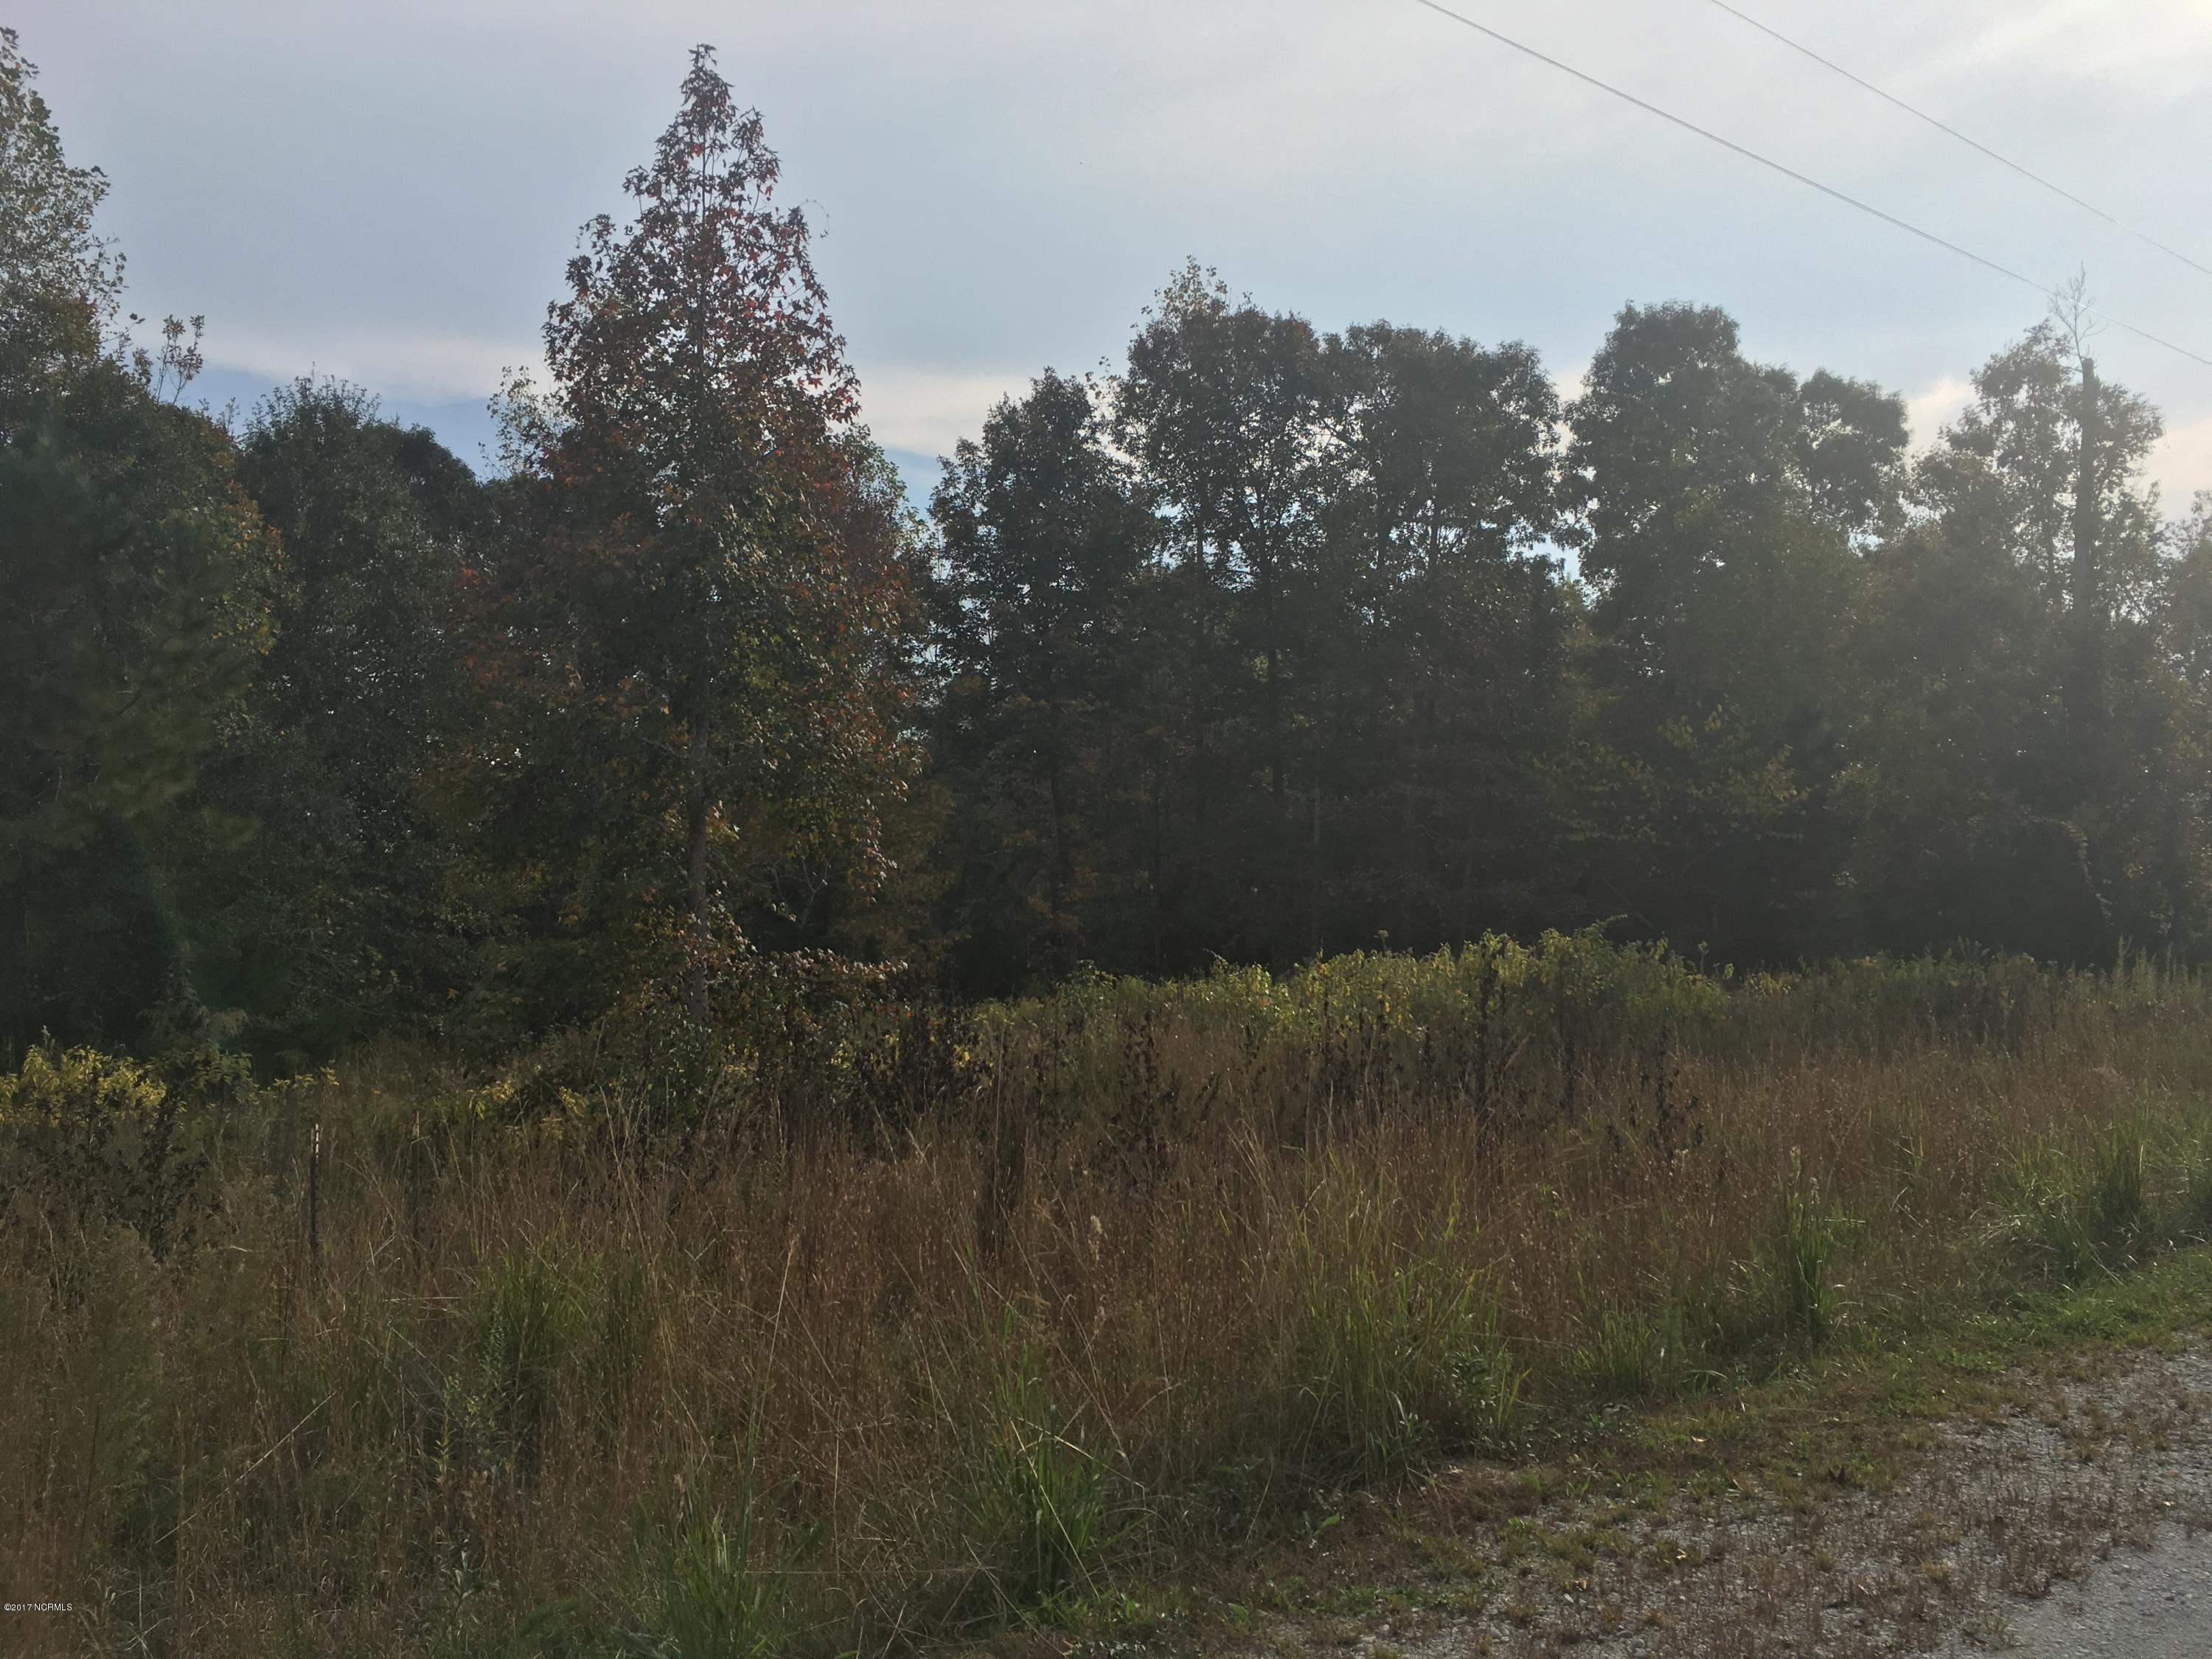 260 Everett Yopp Drive, Sneads Ferry, North Carolina 28460, ,Residential land,For sale,Everett Yopp,100090044